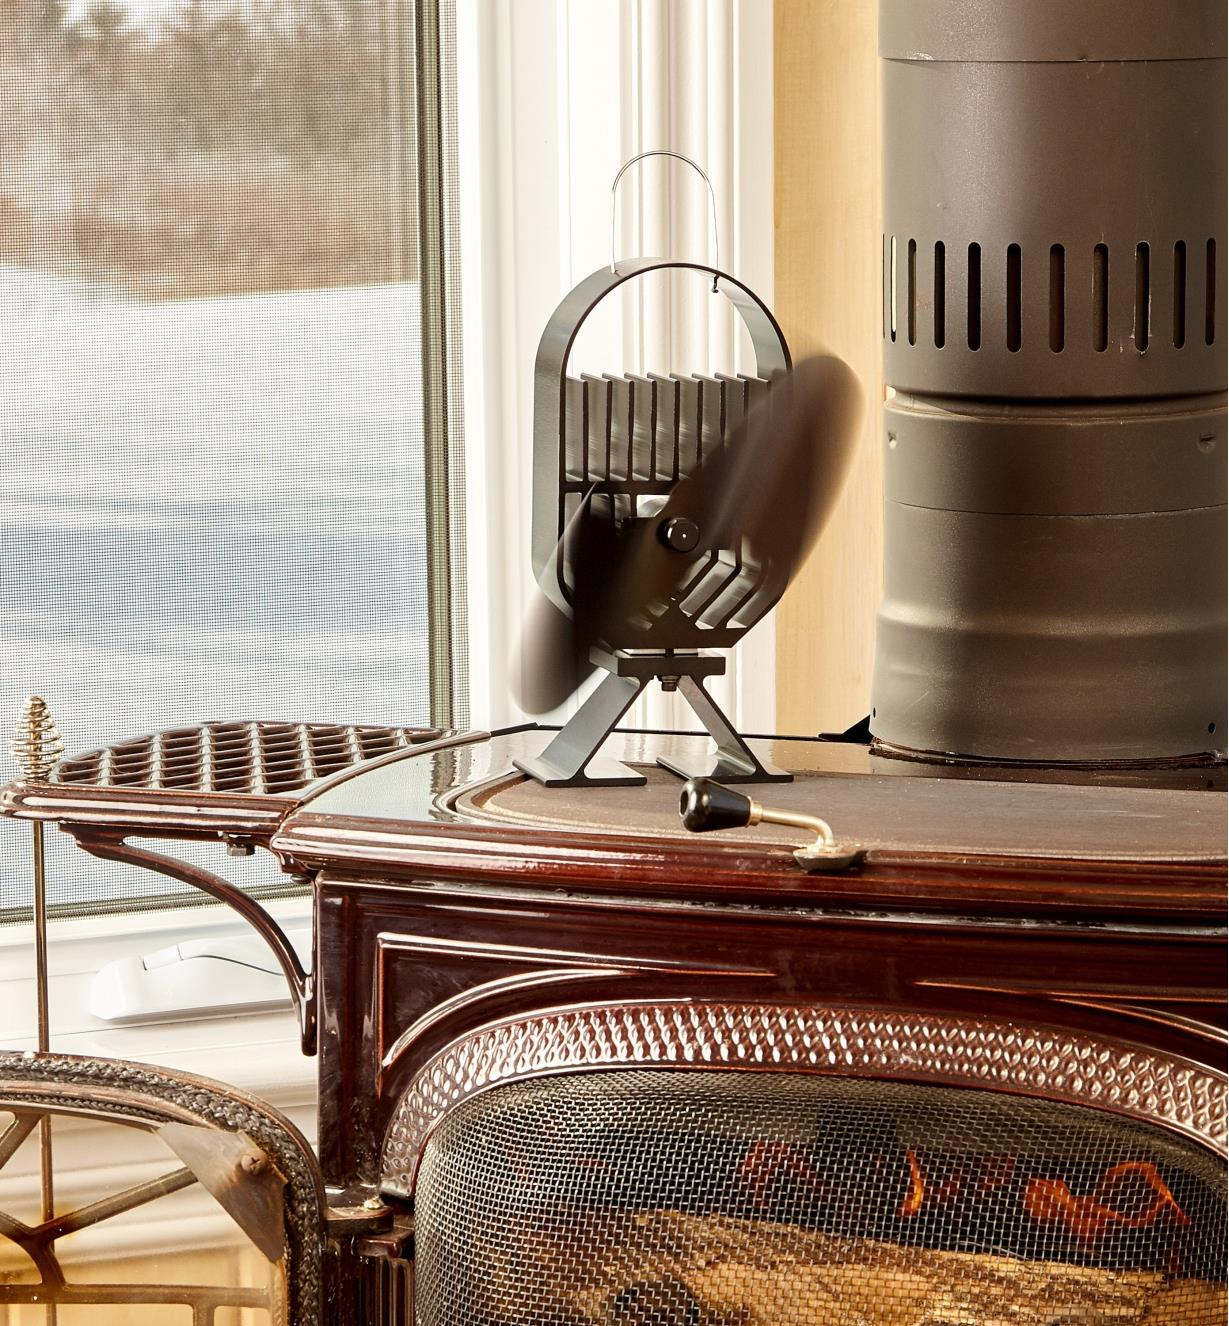 Small Ecofan AirDeco on a wood stove, distributing the heat of the fire